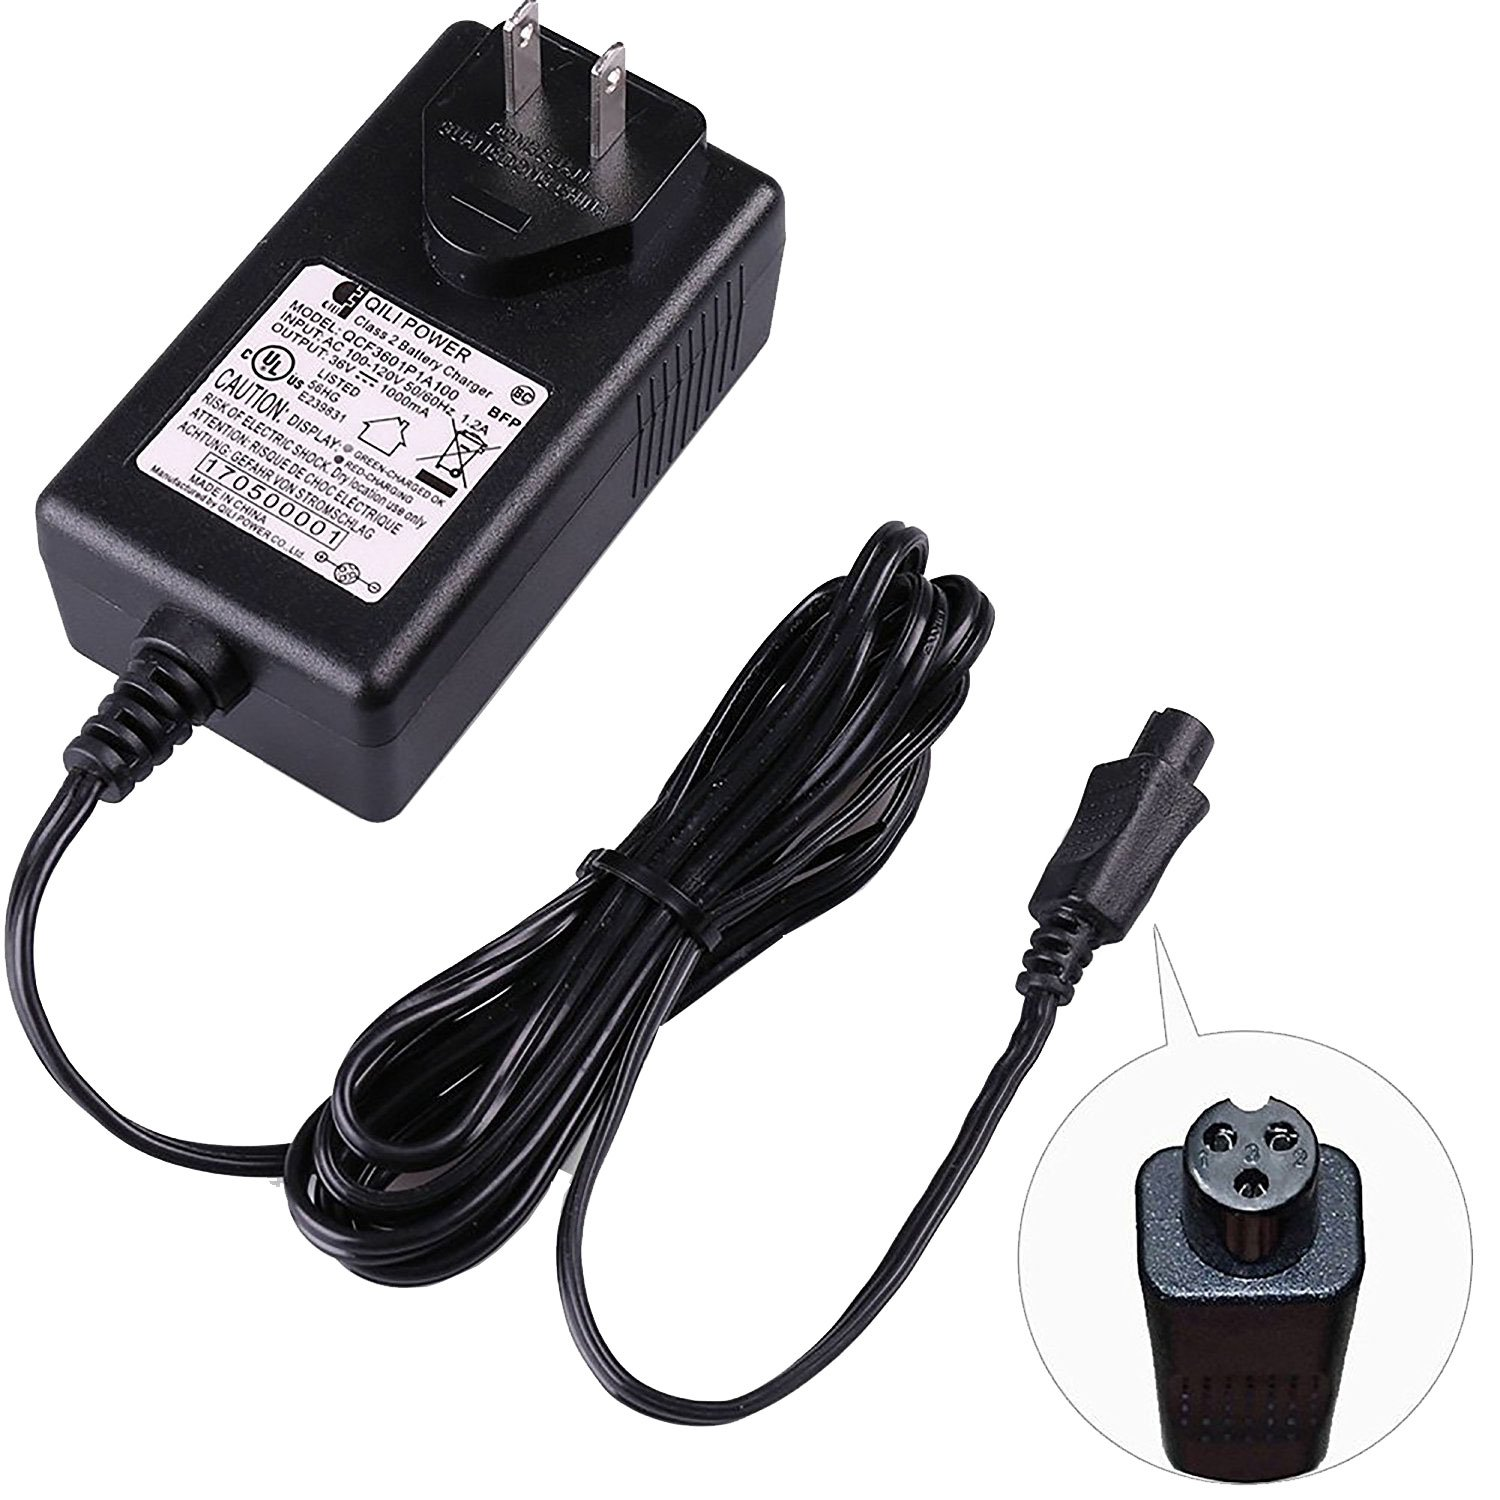 36V 1A Lithium Battery Charger - PREMIUM 36 Volt 1000mA Mini 3-Prong Replacement Charger for Razor HT 2.0, Swag T1, T3, T6, X1, Electric Scooters - QCF3601P1A100 - Razor Part W151550590140-42V MAX by Precision Auto Products